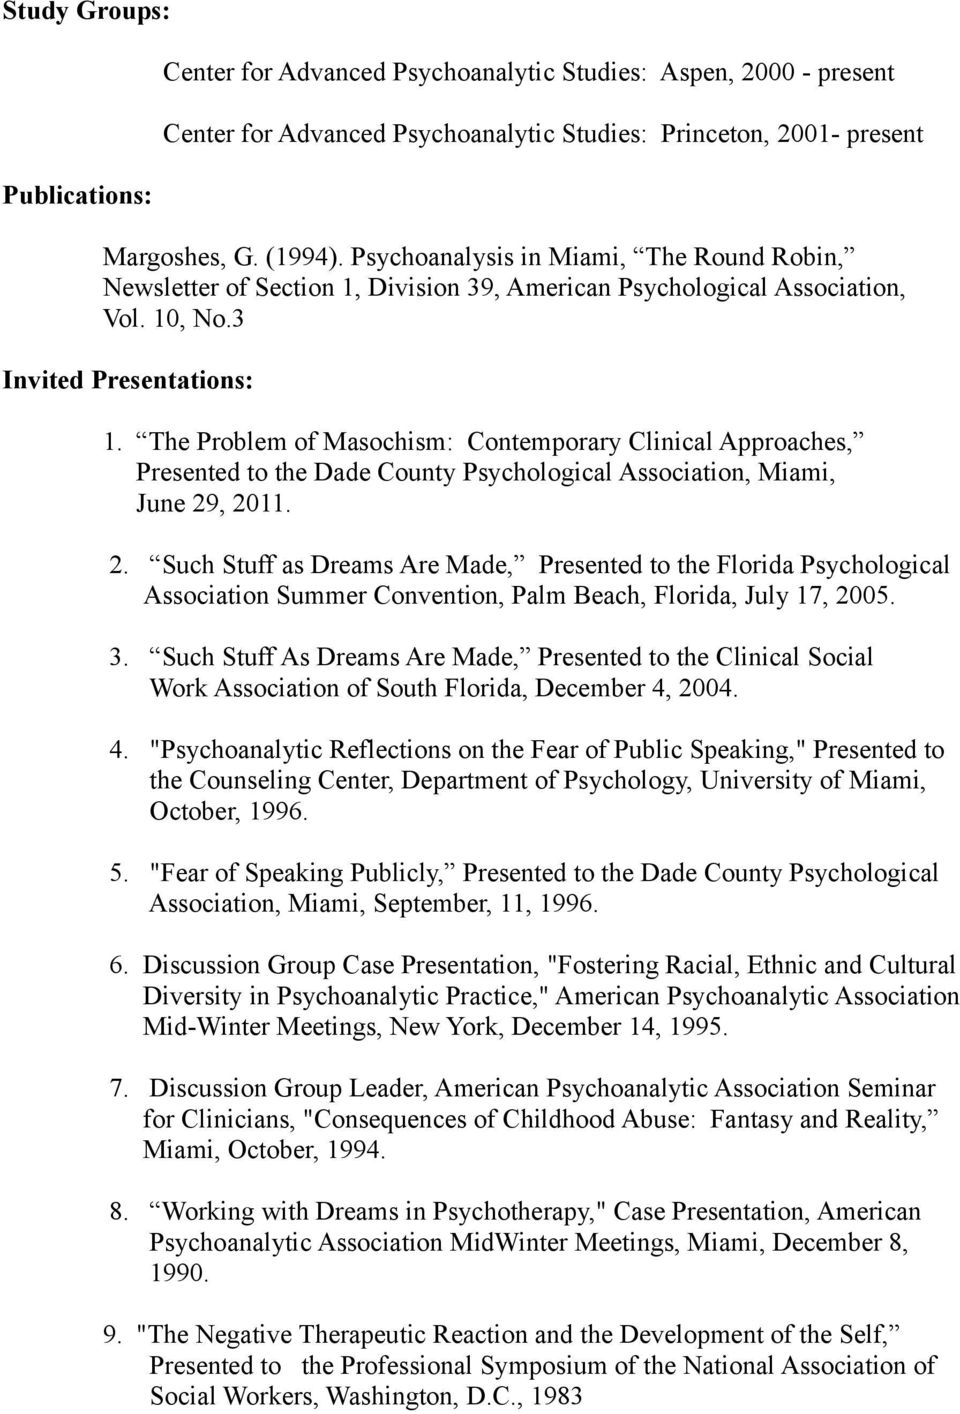 The Problem of Masochism: Contemporary Clinical Approaches, Presented to the Dade County Psychological Association, Miami, June 29